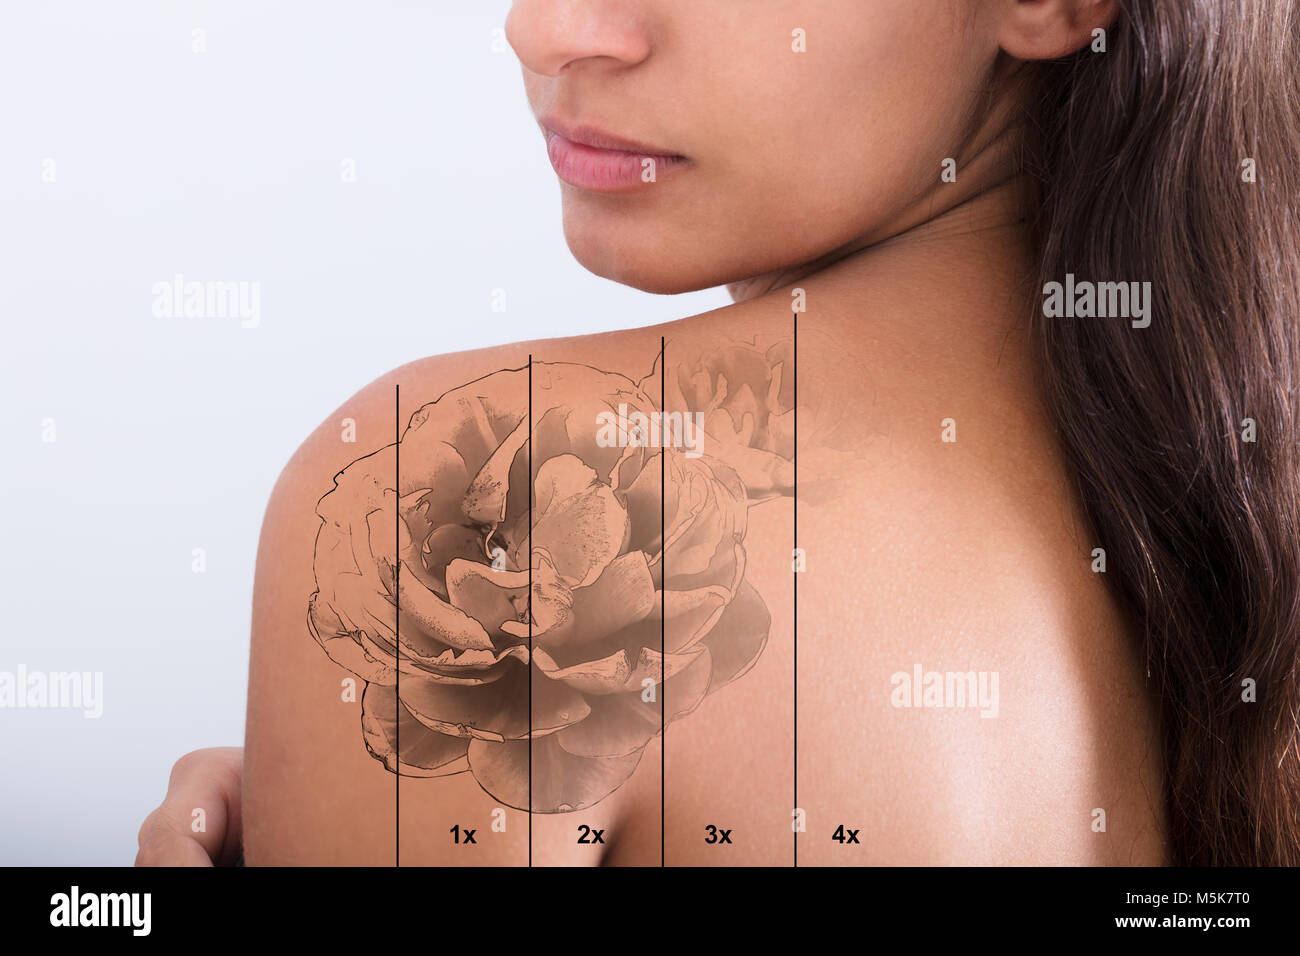 Tattoo Removal Laser Stock Photos & Tattoo Removal Laser ...